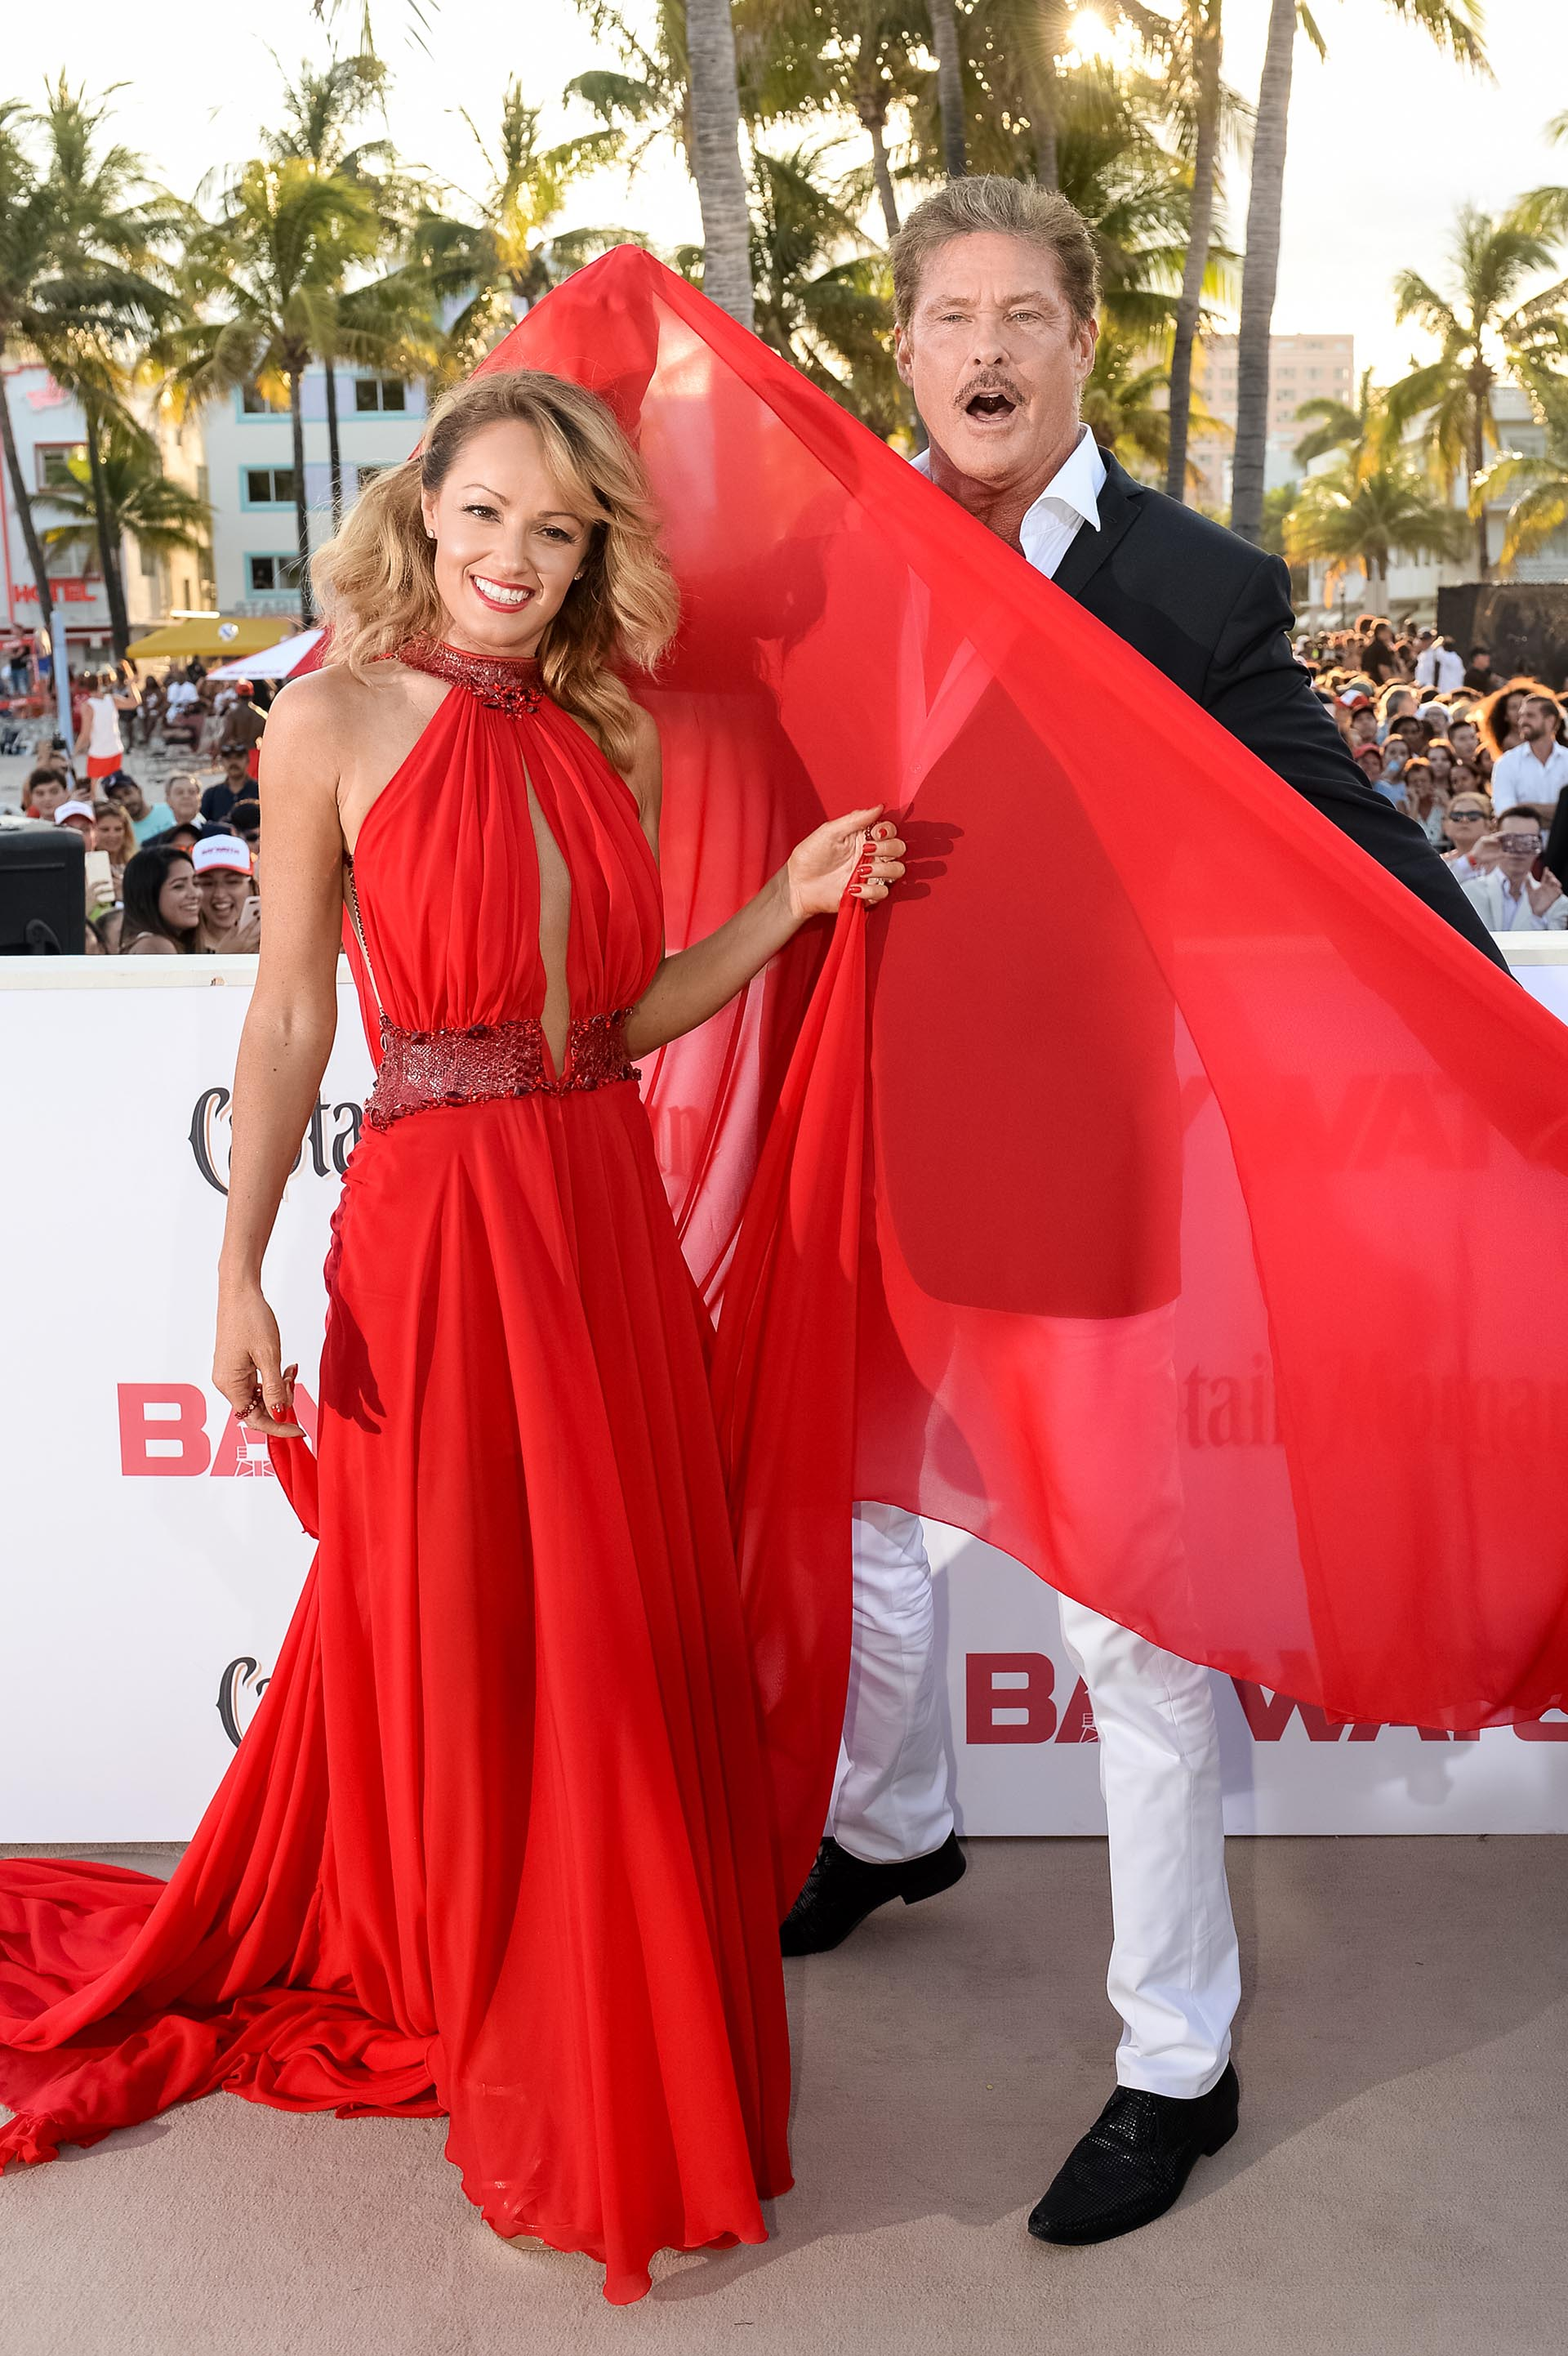 David Hasselhoff y su esposa Hayley Roberts arriban a la red carpet, que se llevó a cabo en South Beach, Miami